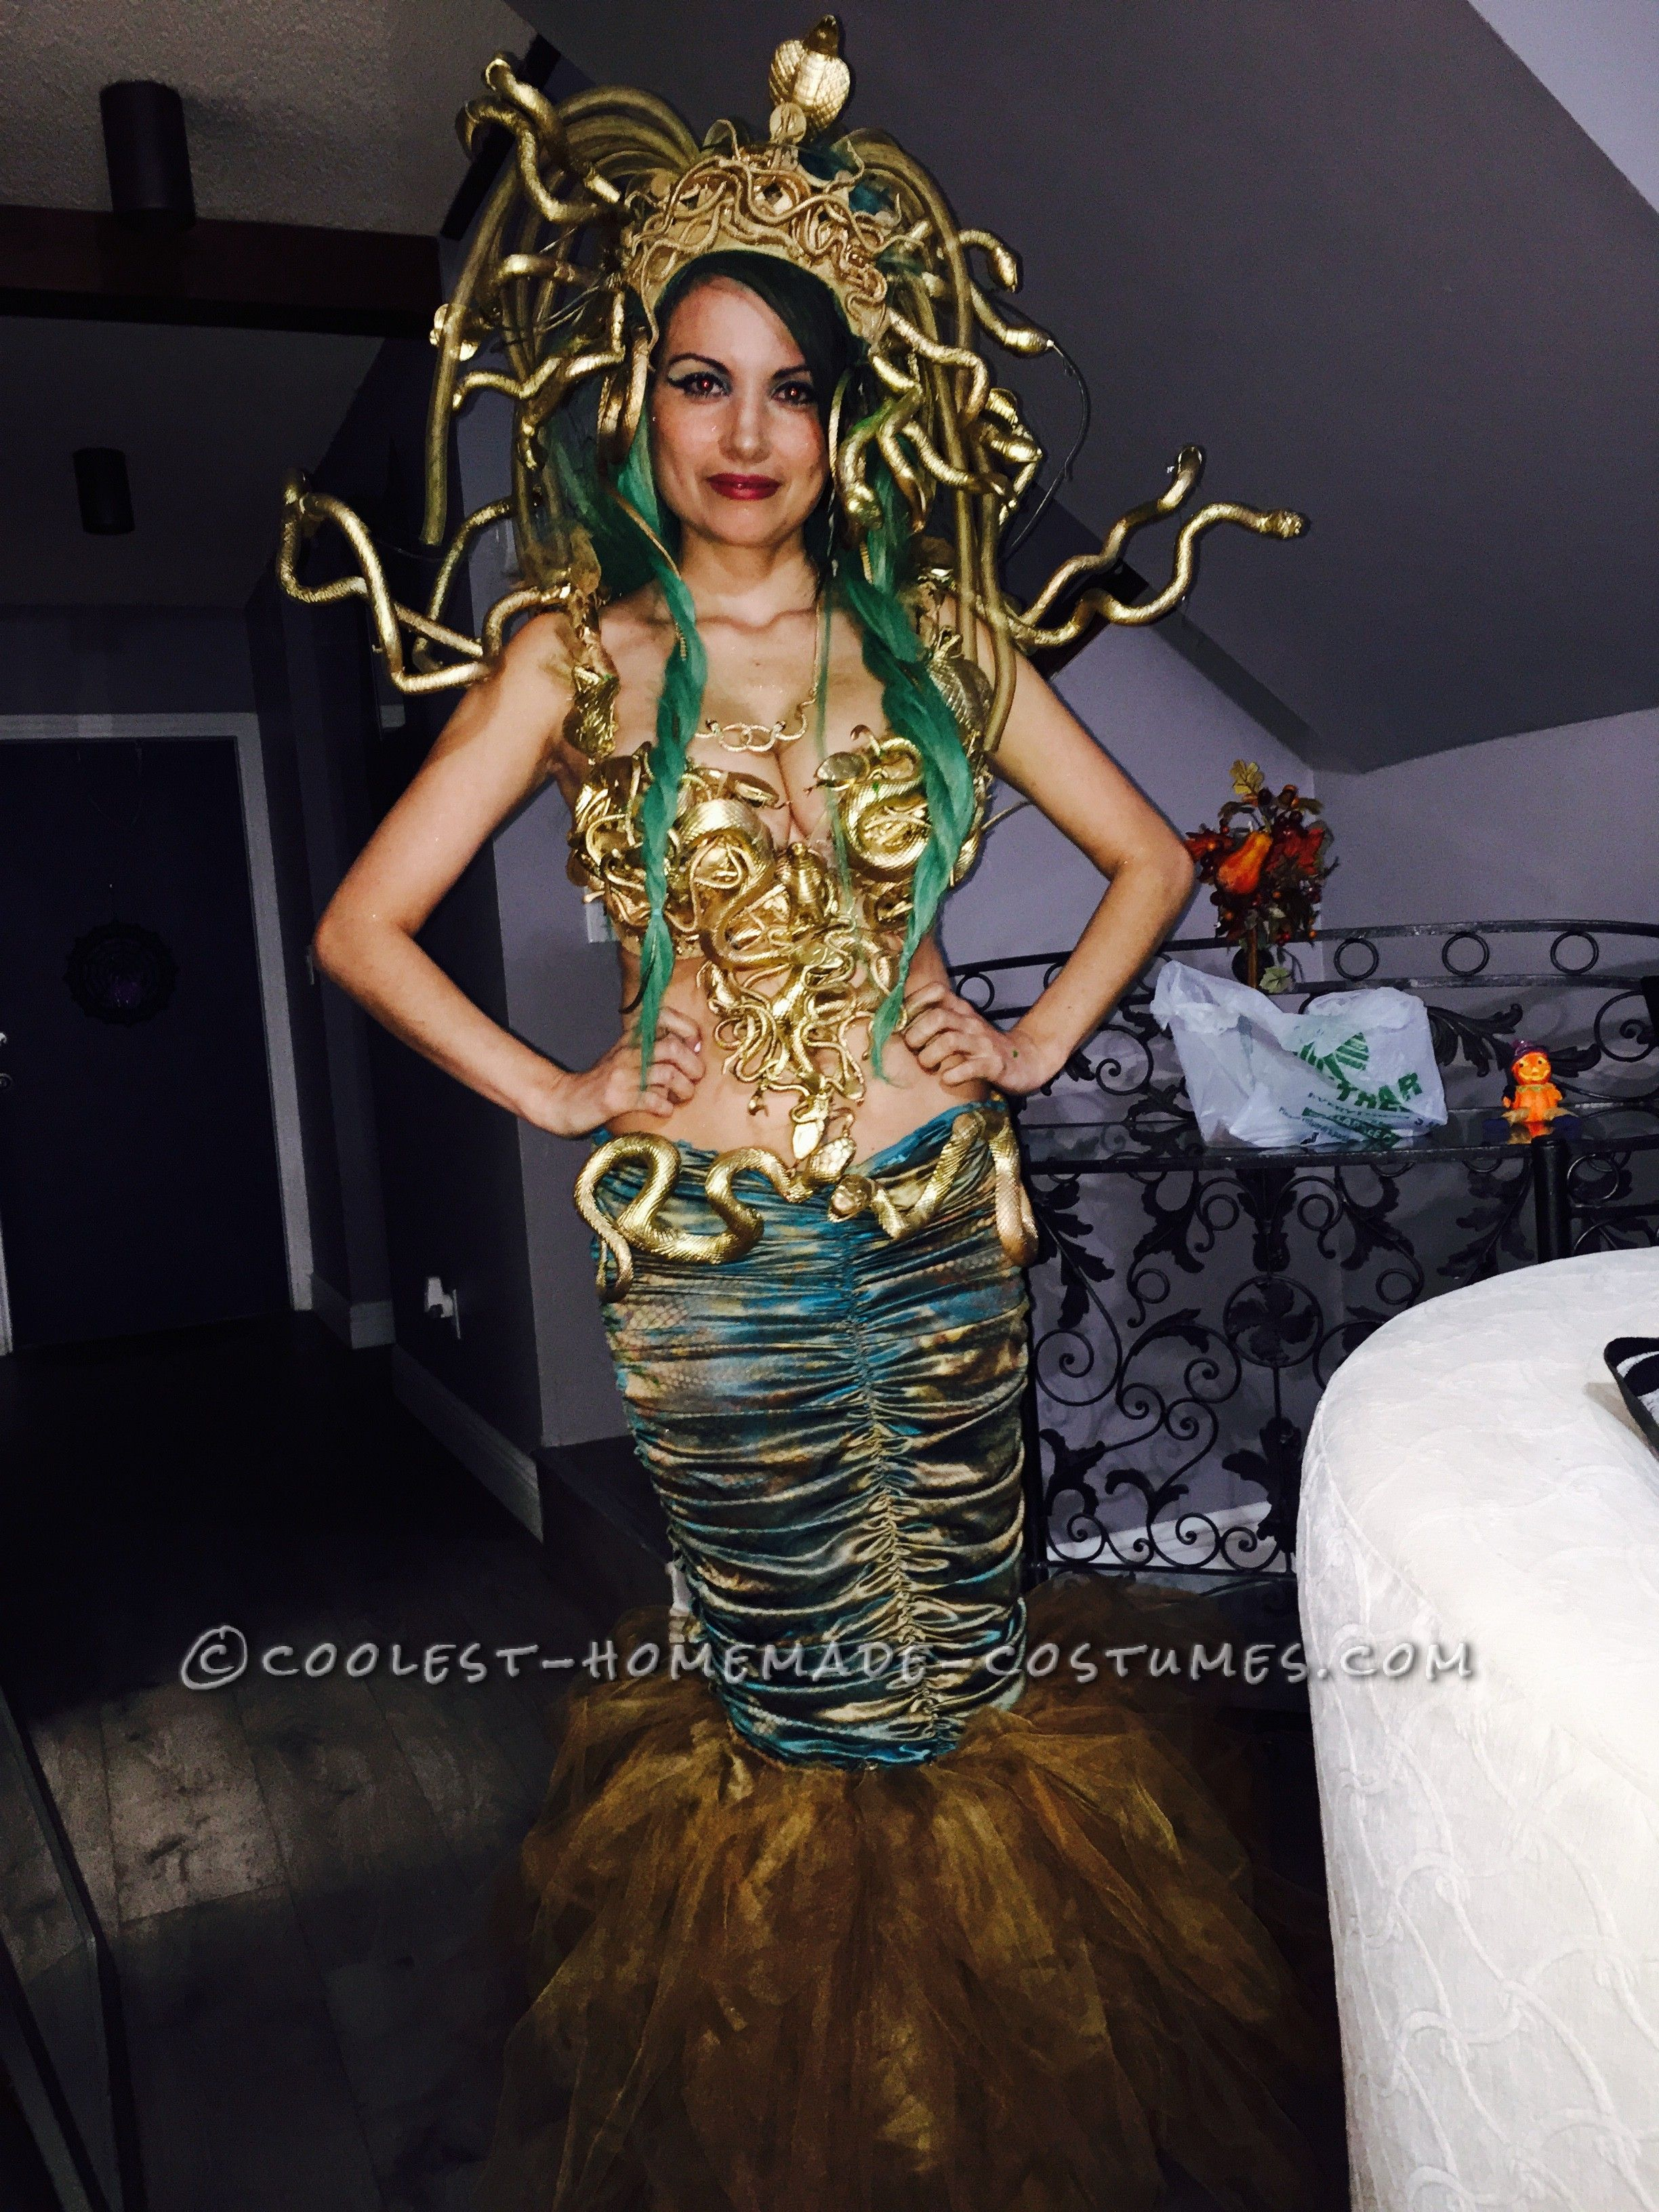 medusa costumes for halloween & over the weekend the x factor winner